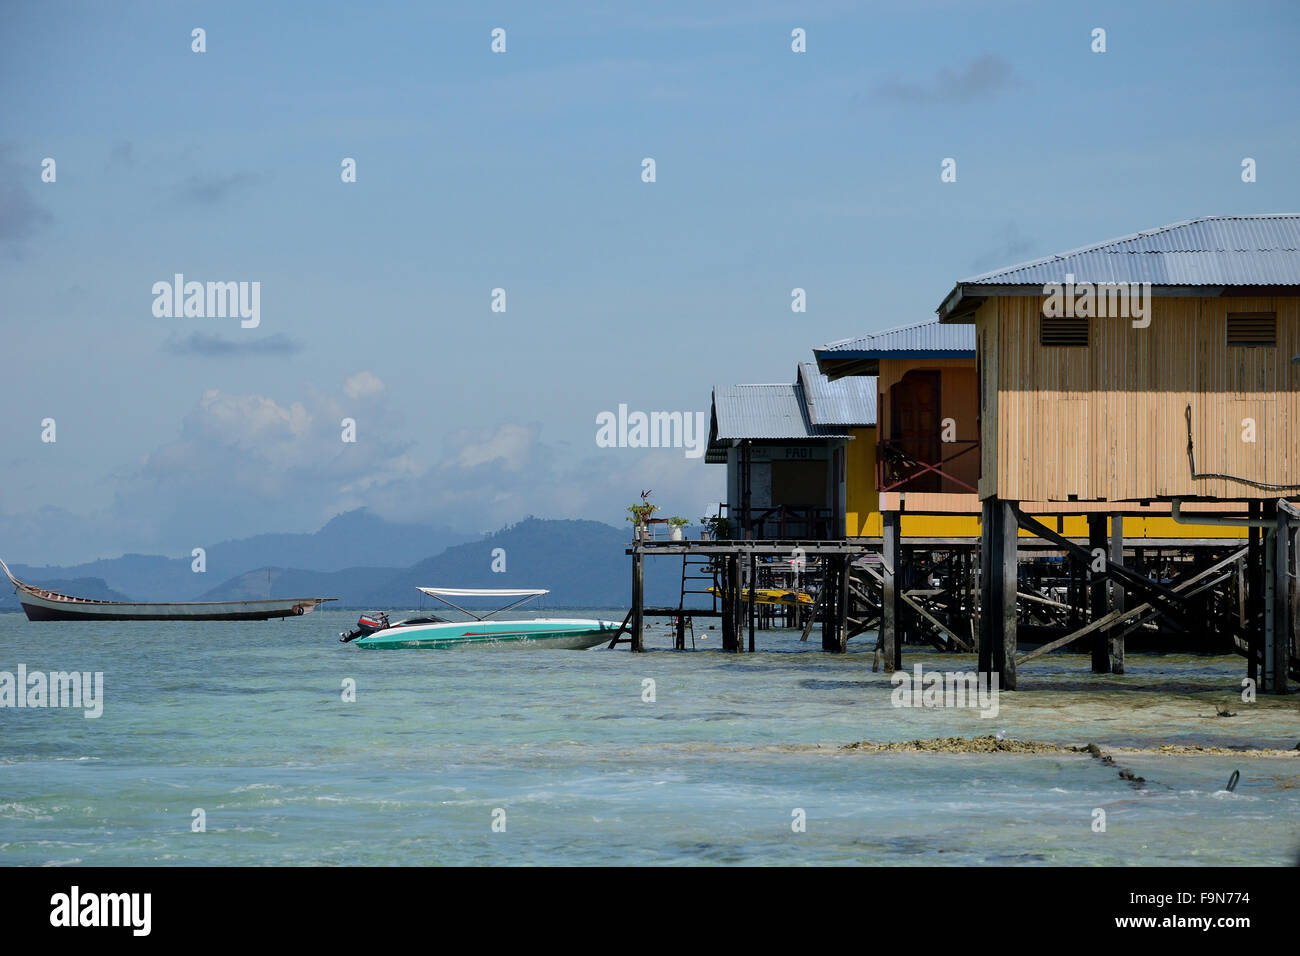 Houses on stilts in Mabul island Malaysia - Stock Image